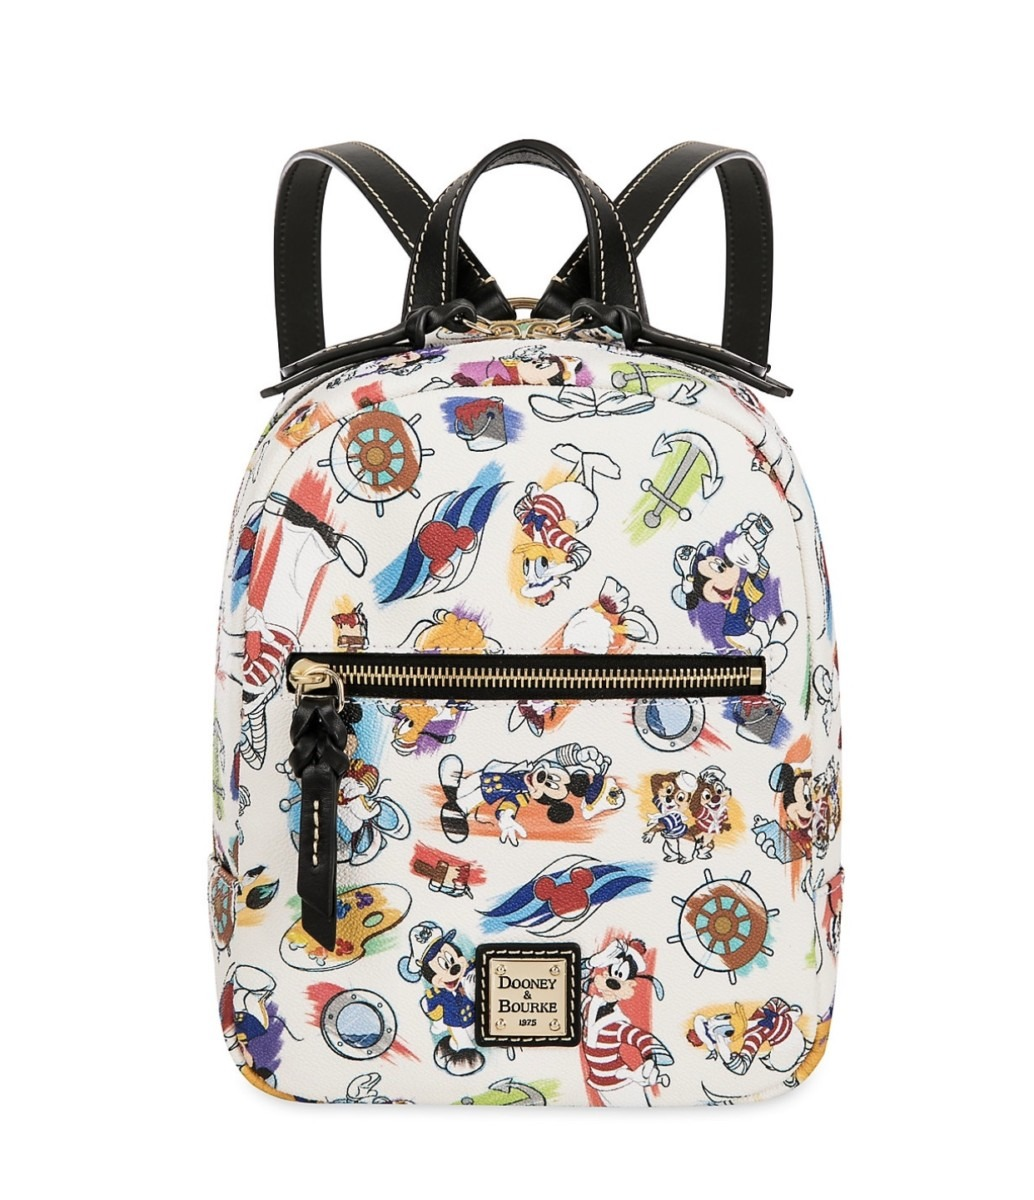 New Disney Dooney & Bourke Handbags Now on shopDisney! 1